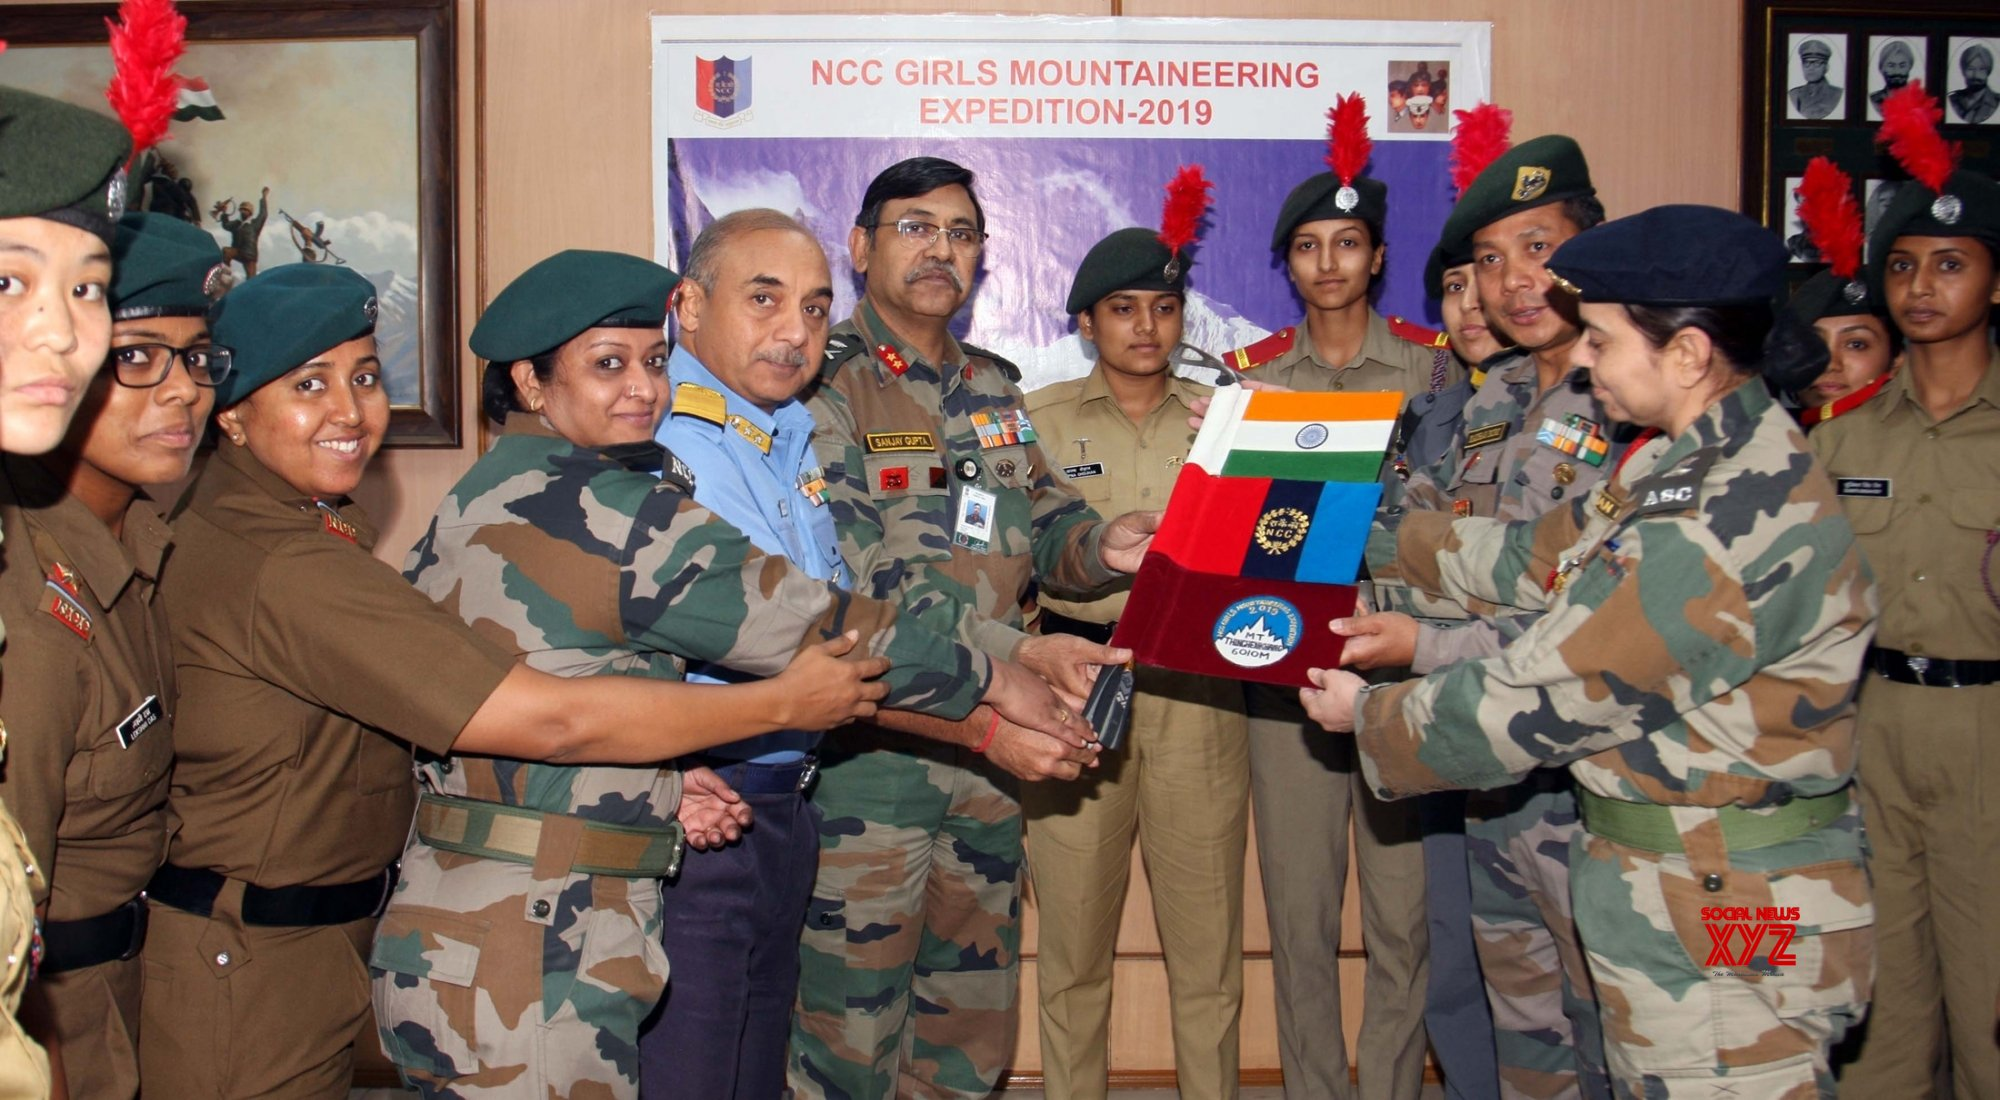 New Delhi: Flagging off ceremony of NCC Girls Mountaineering Expedition #Gallery